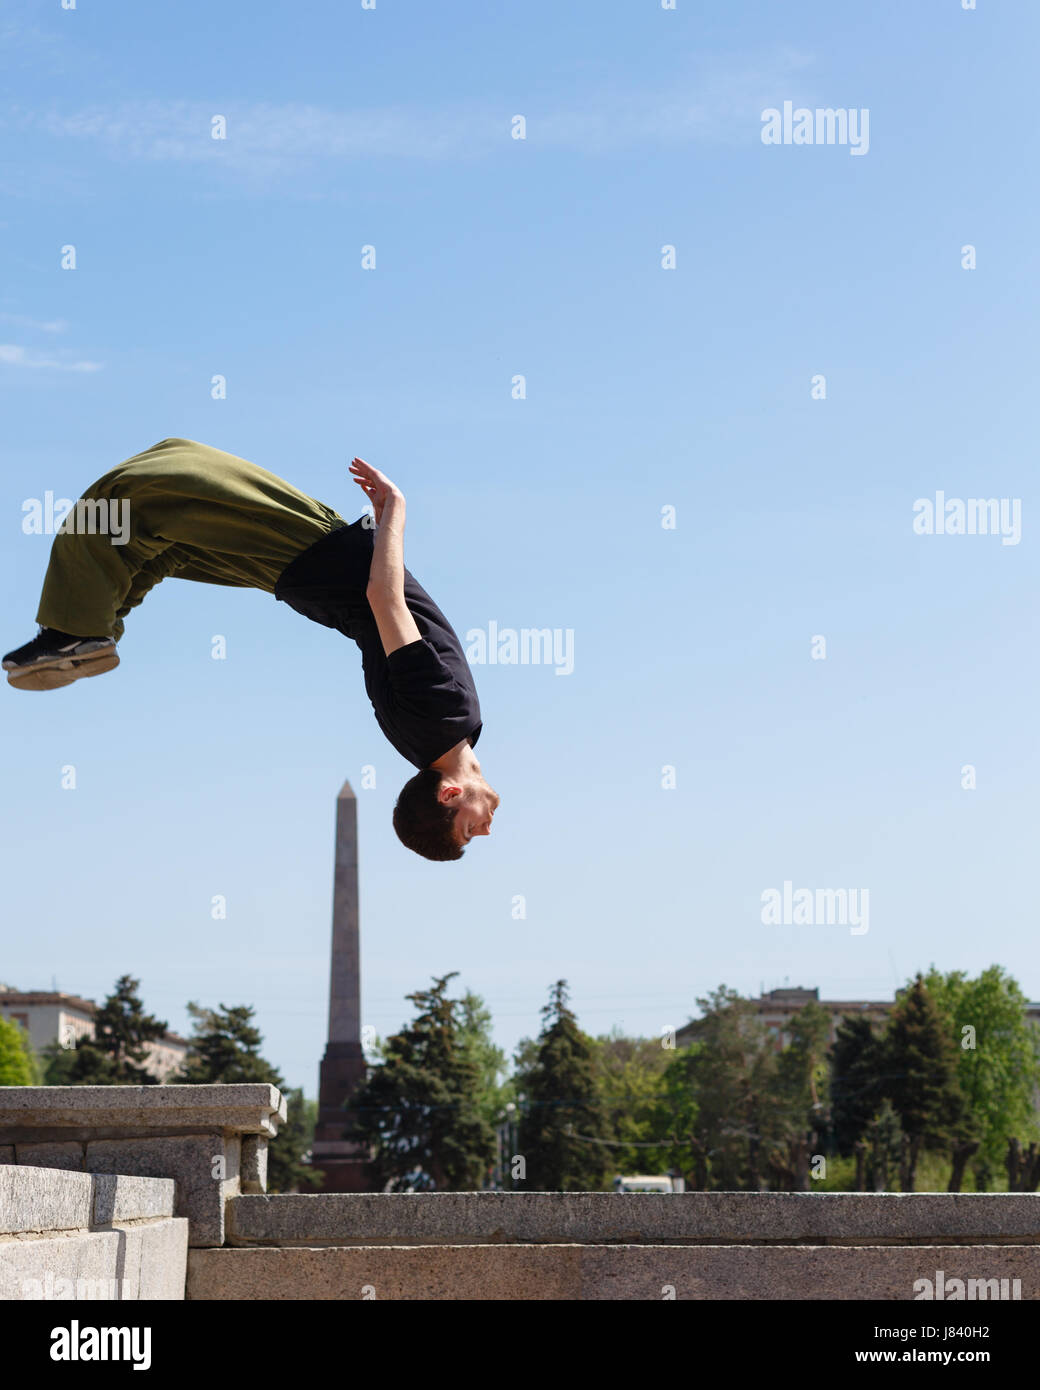 Young man doing a back flip in the background obelisk. Parkour in the urban space. Sports in the city. Sport activity. - Stock Image